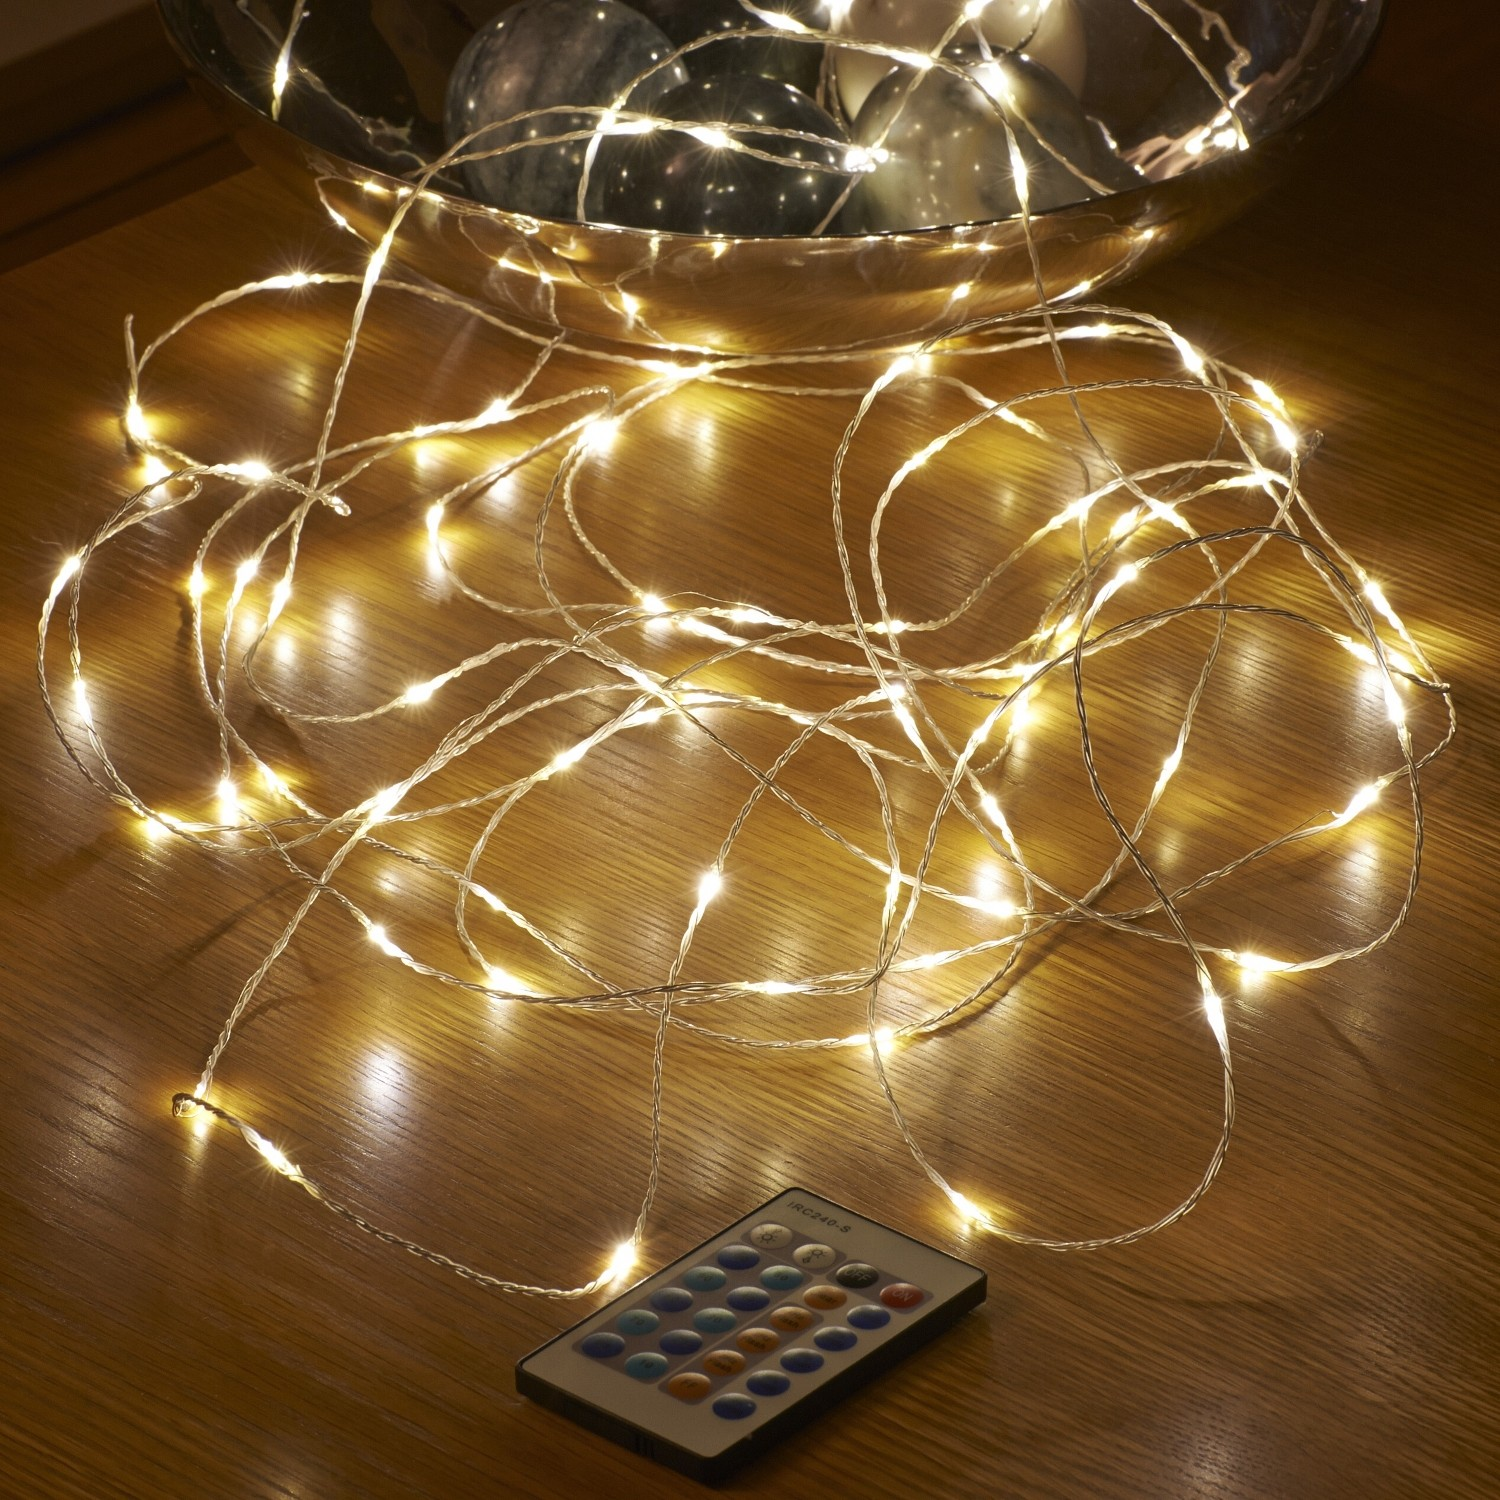 Mains String Garden Lights : Micro LED String Lights - Mains Powered - Remote Controlled - 10M - Auraglow LED Lighting